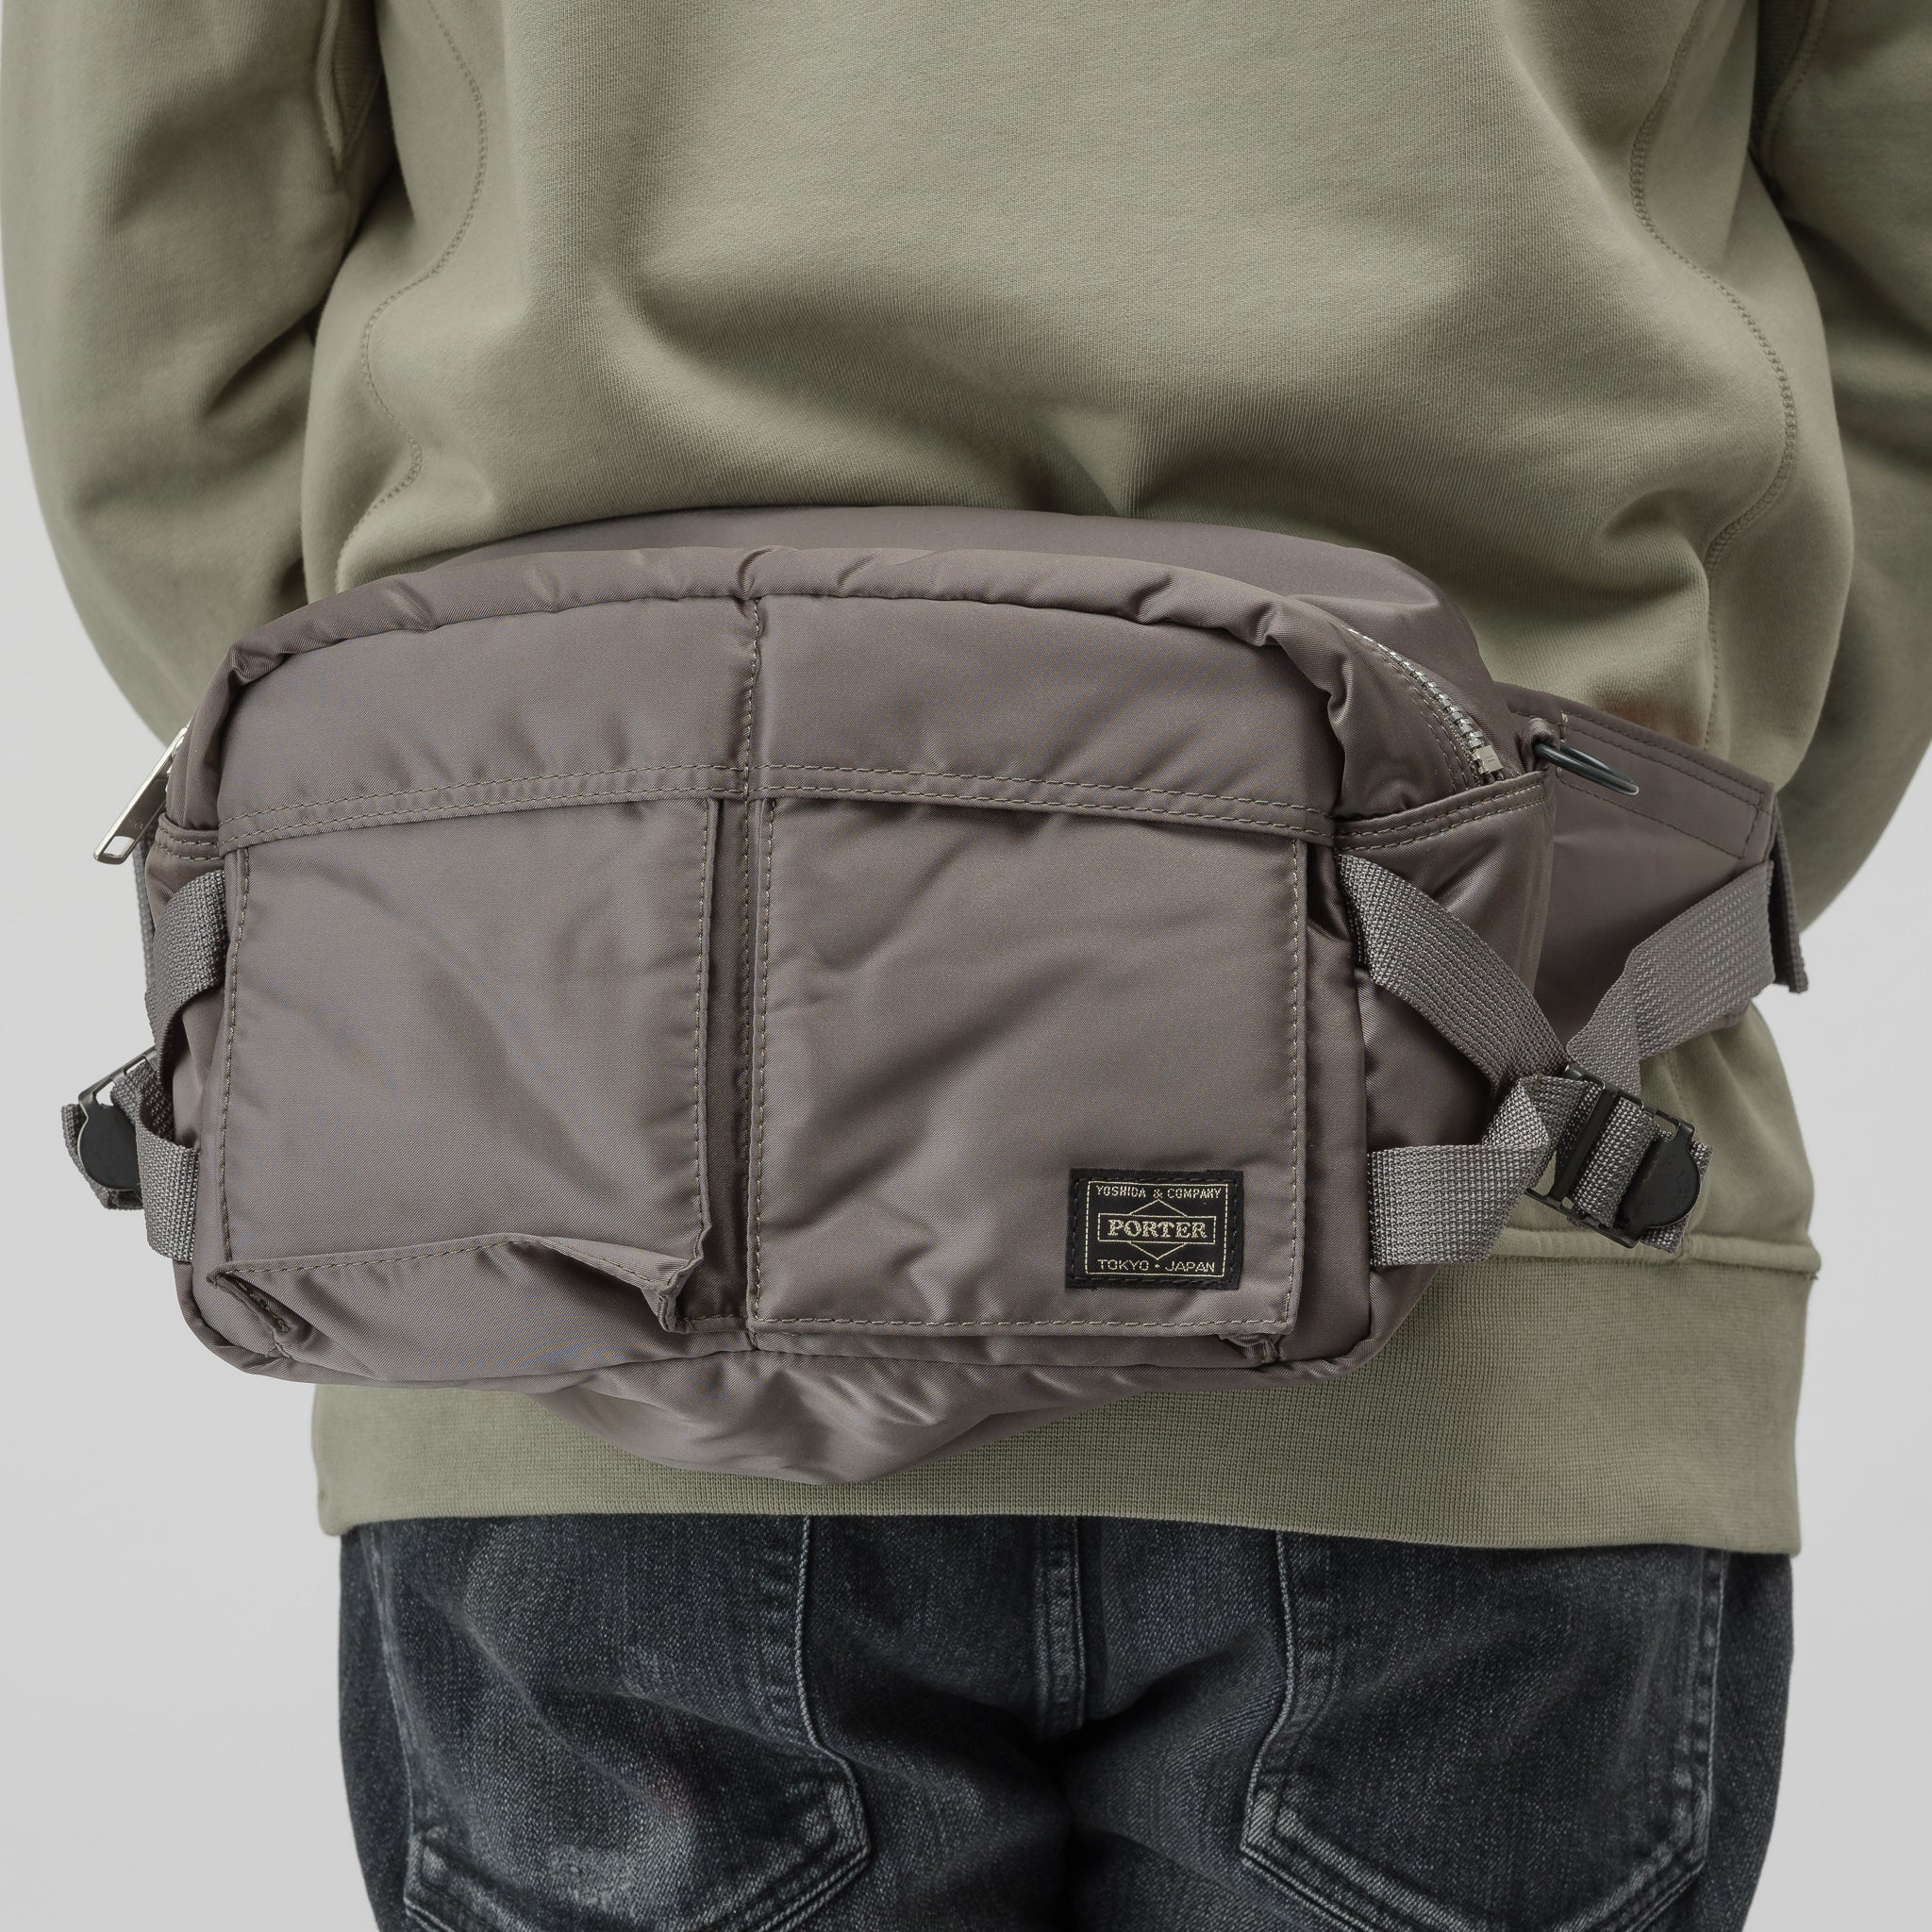 TANKER 2Way Waist Bag in Military Green